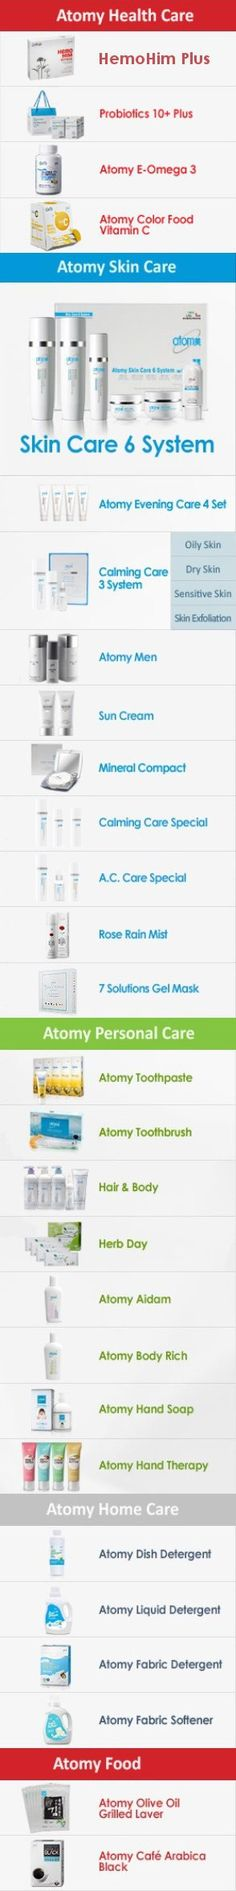 Atomy Products